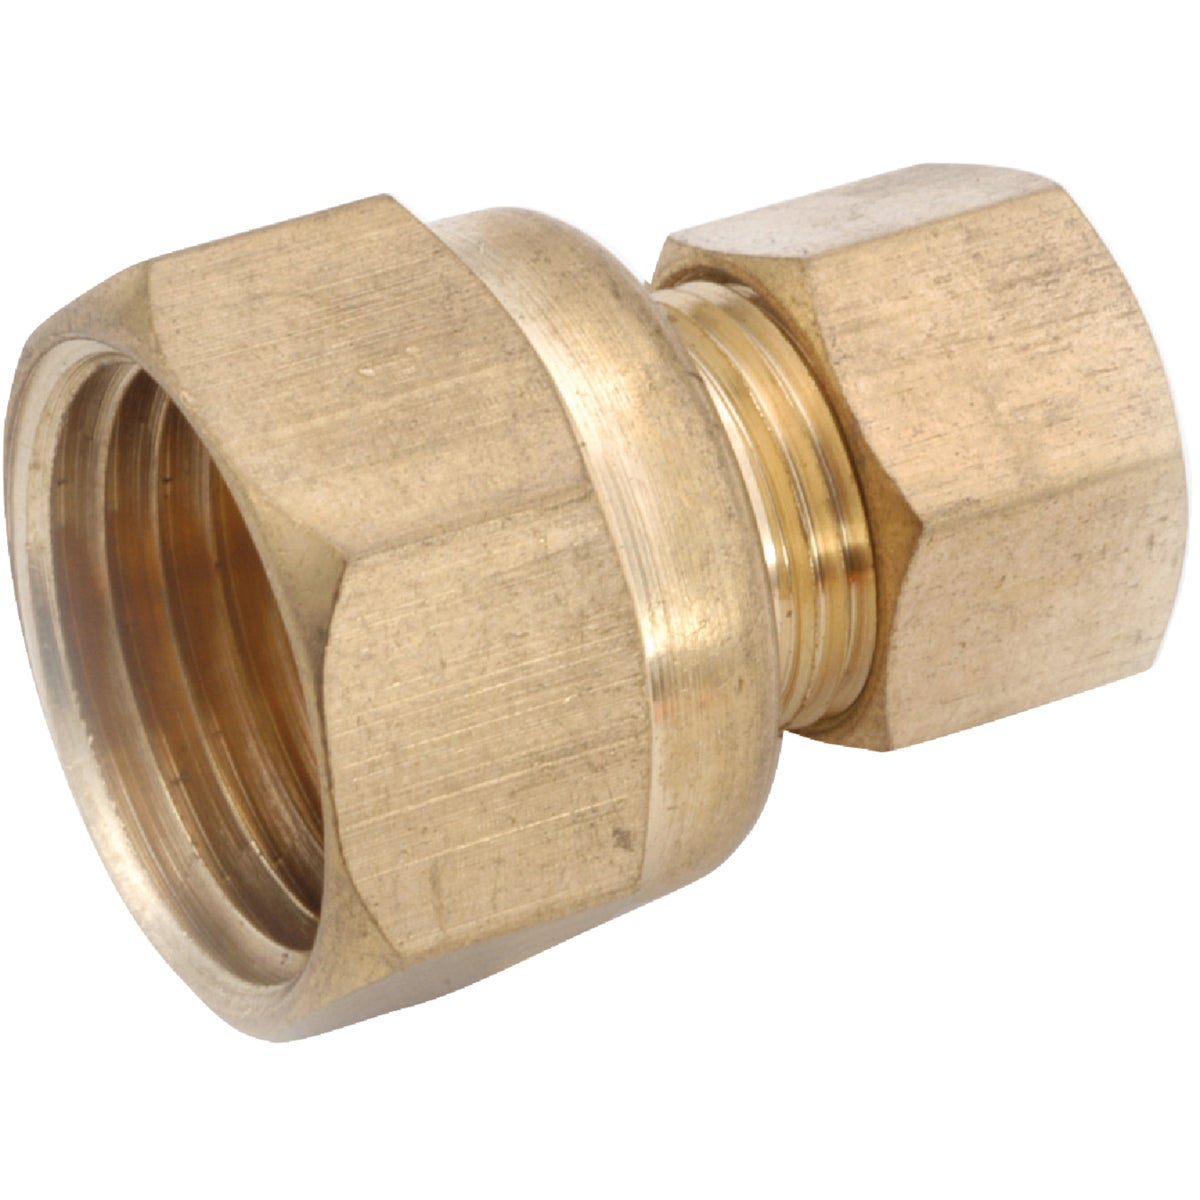 3/8X1/4 FEMALE COUPLING - 750066-0604 by Anderson Metals Corp